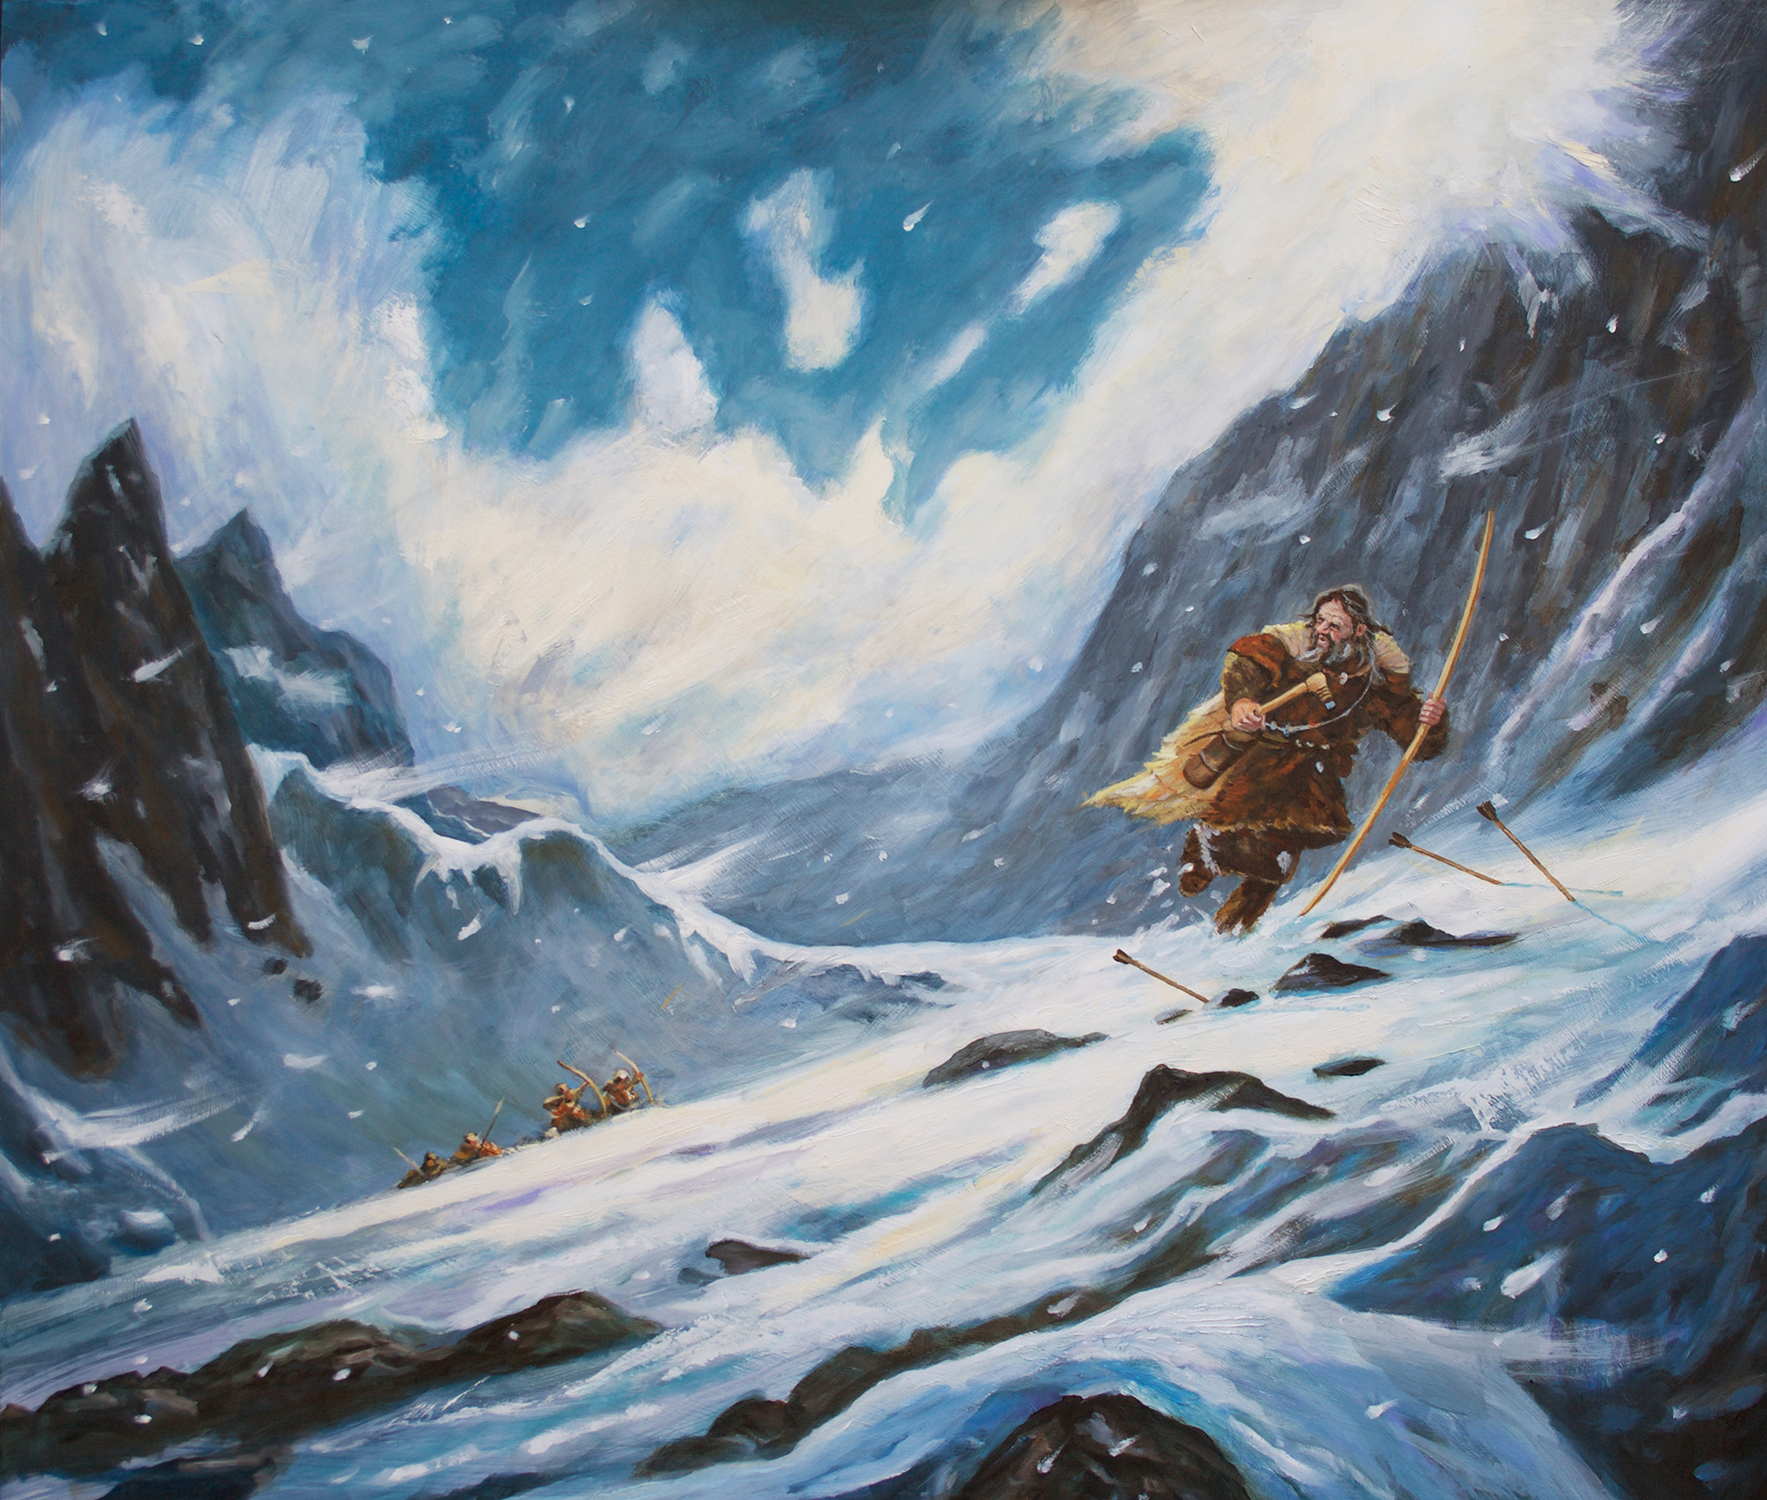 Otzi the Iceman Artwork by Brian McElligott